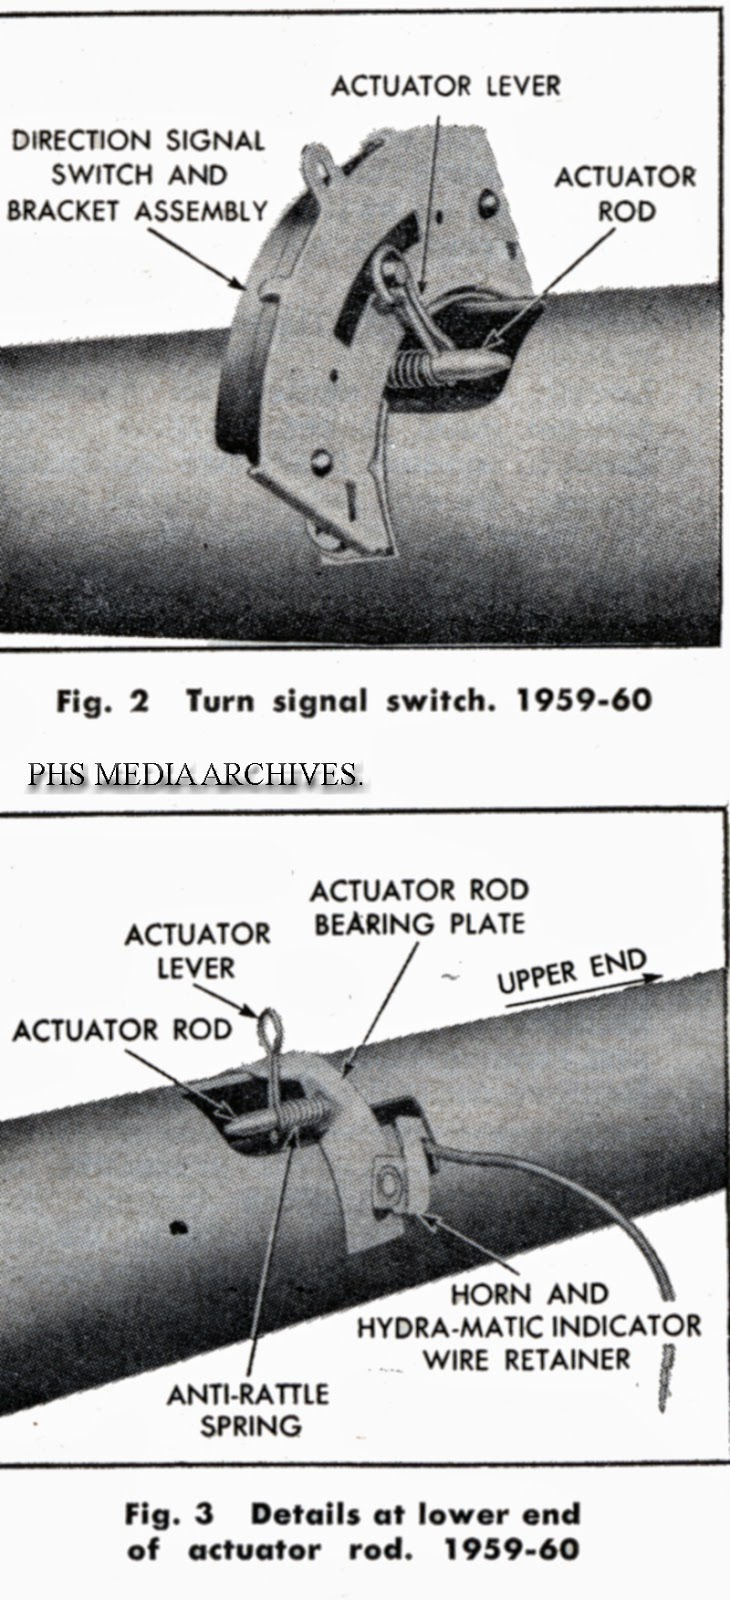 Tech Series Pontiac Turn Signal Switch Id Guide 1959 1966 Chieftain Wiring Diagram 60 Is Relatively Large But Easy To Change As Its Completely External